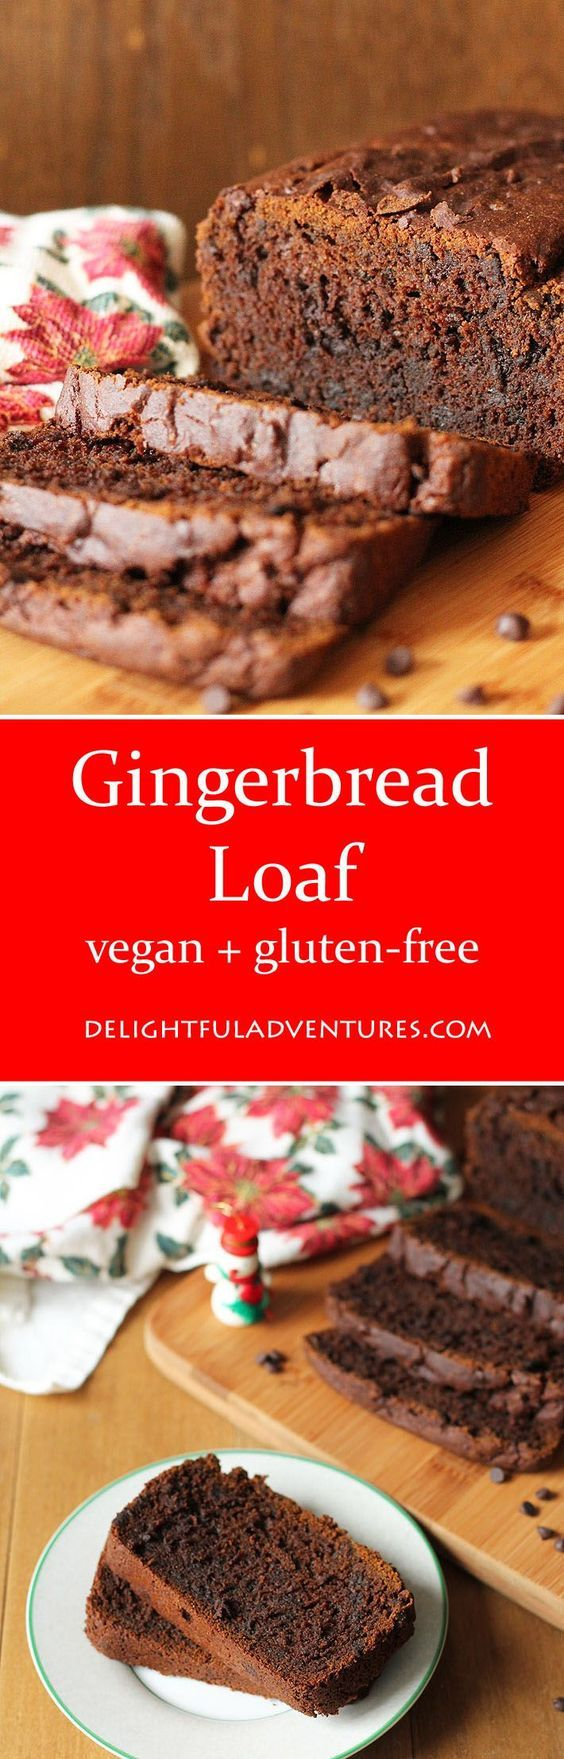 This Vegan Gluten Free Gingerbread Loaf is perfectly spiced & will become a fave during the holidays. A great recipe to make and give (or enjoy yourself!).: